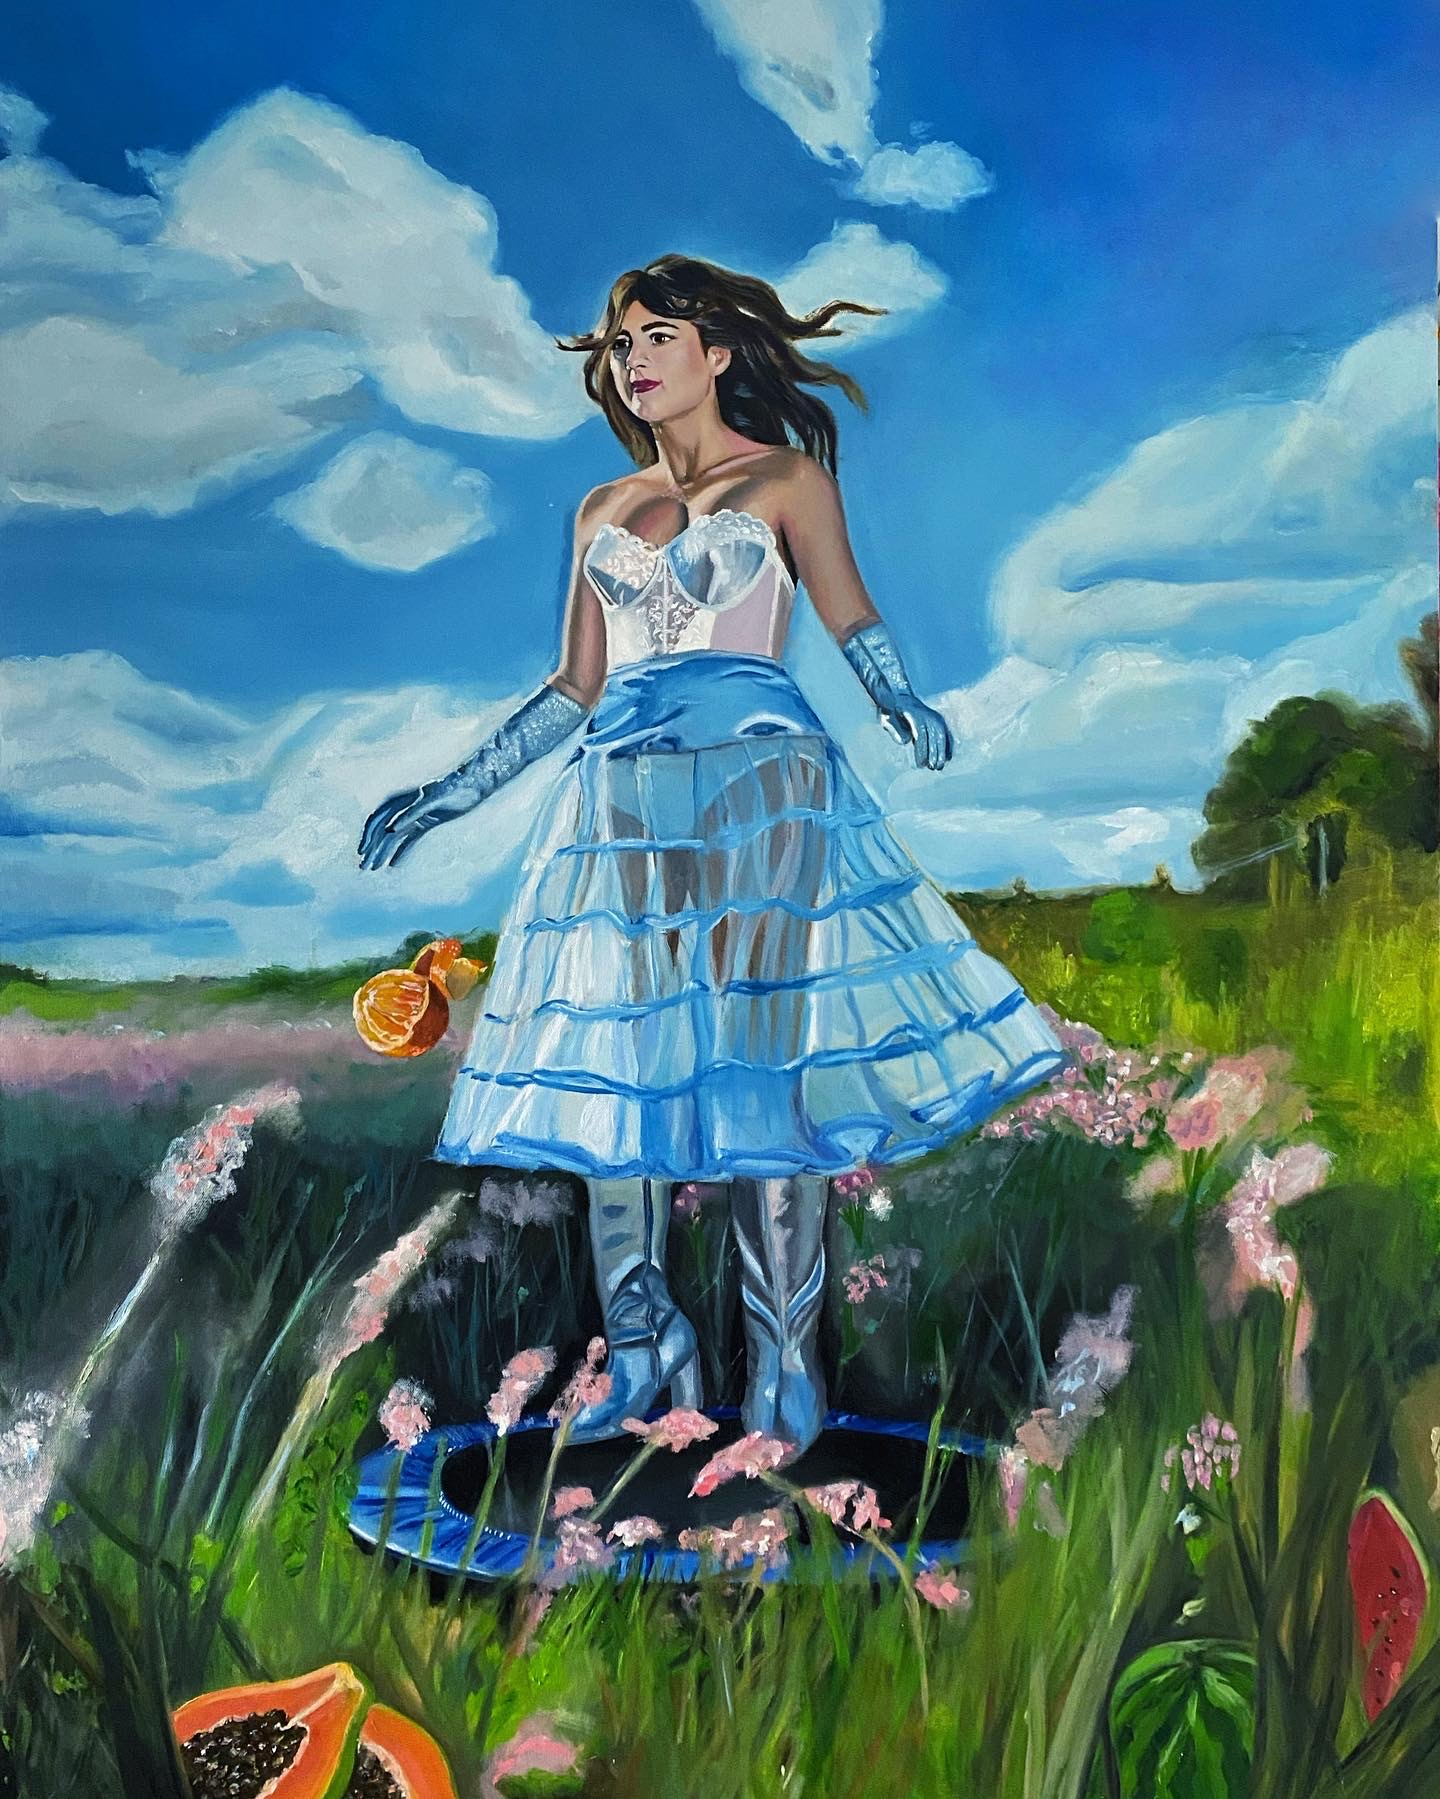 A painting of a woman in blue dress outside on a trampoline